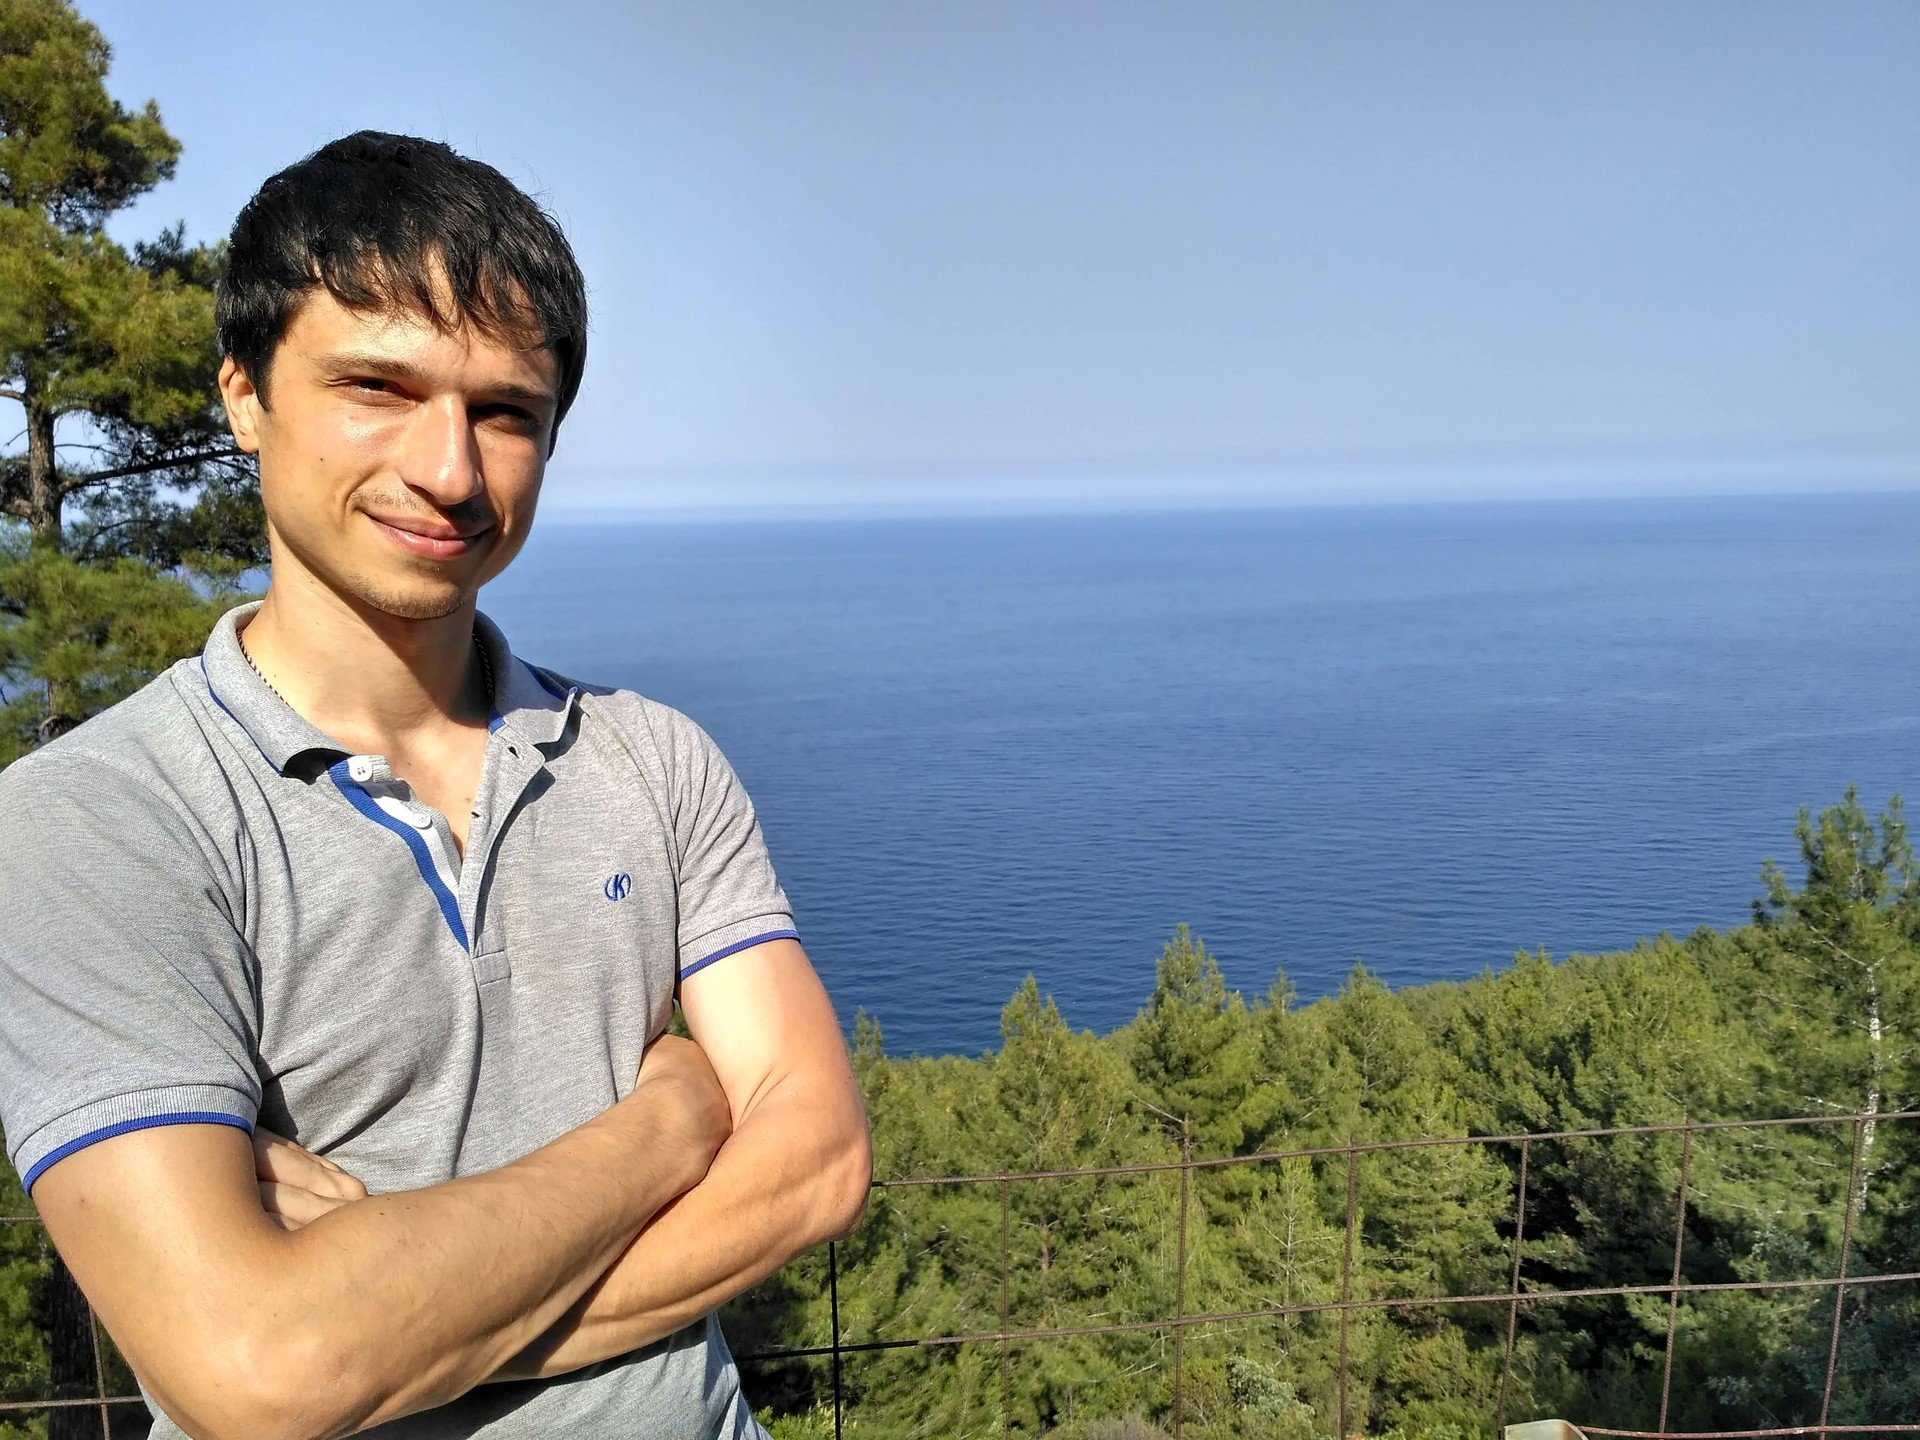 Meet Dan Goriaynov who chose to relocate to Bulgaria and pursue a fulfilling career at VMware